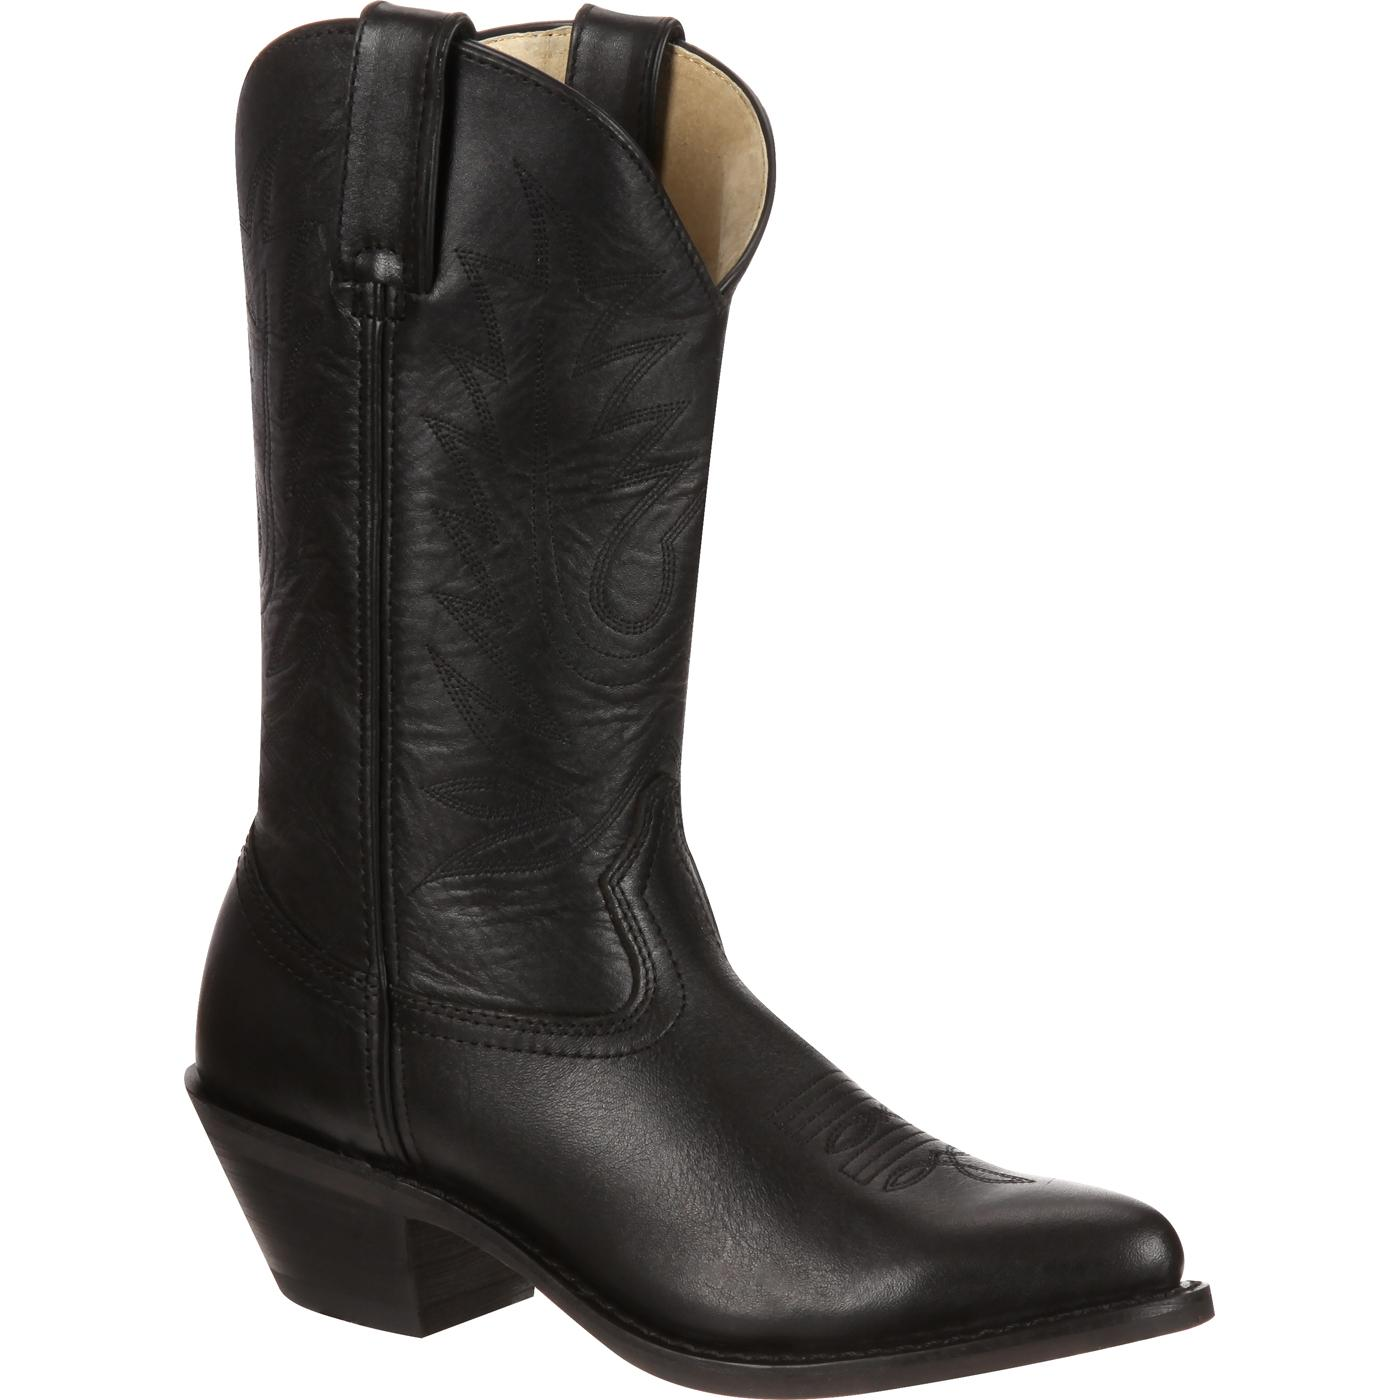 durango s black leather western boots style rd4100